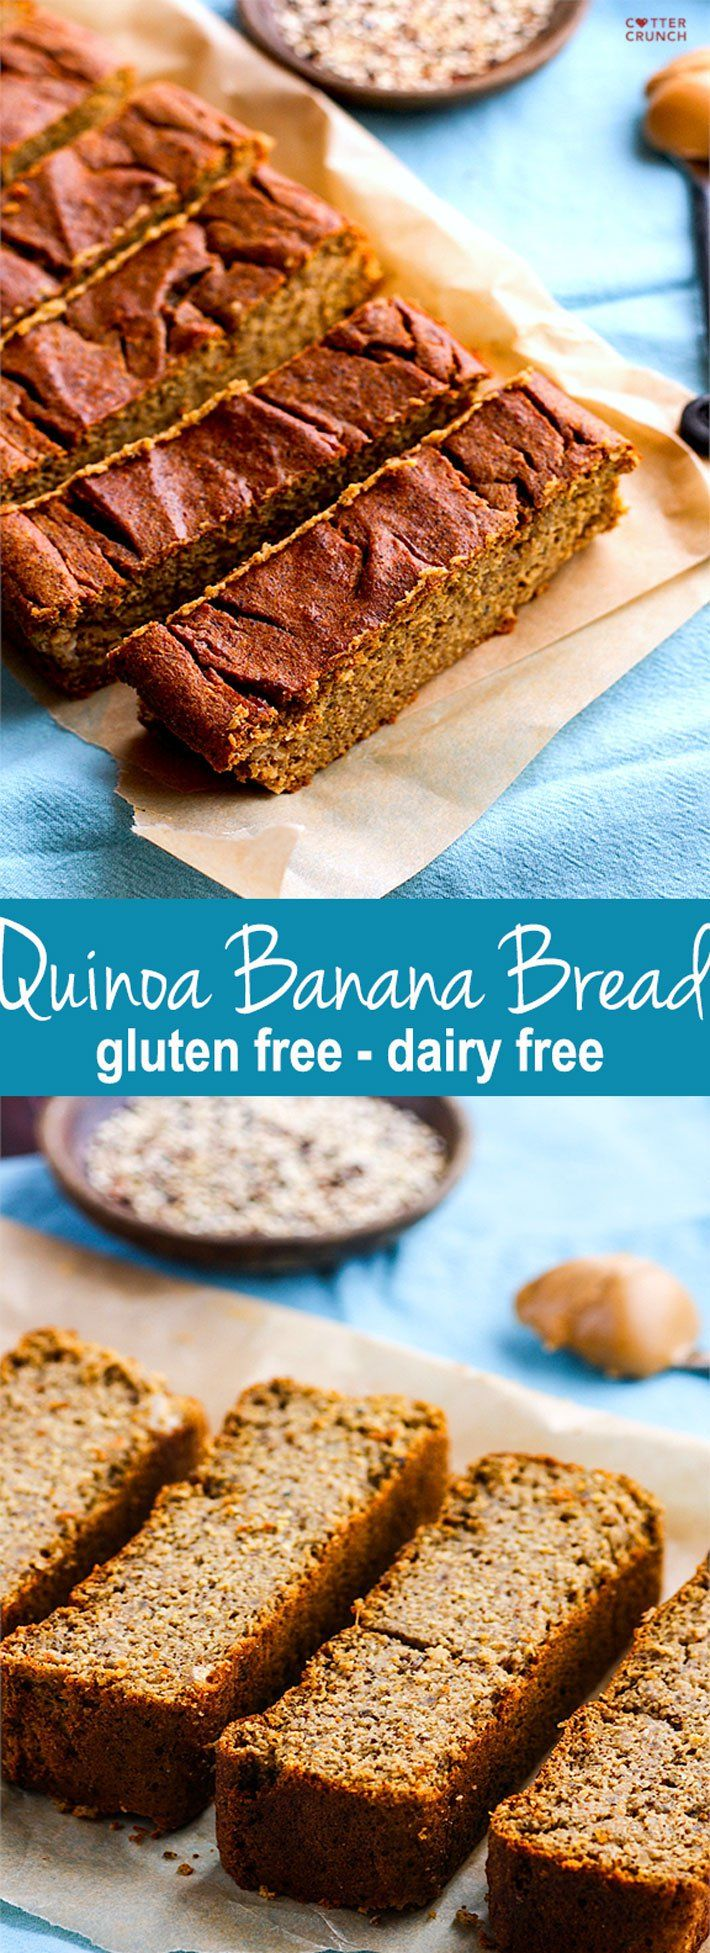 Cook Once, Eat Twice! A Great Way To Use Up Leftover Quinoa Is To